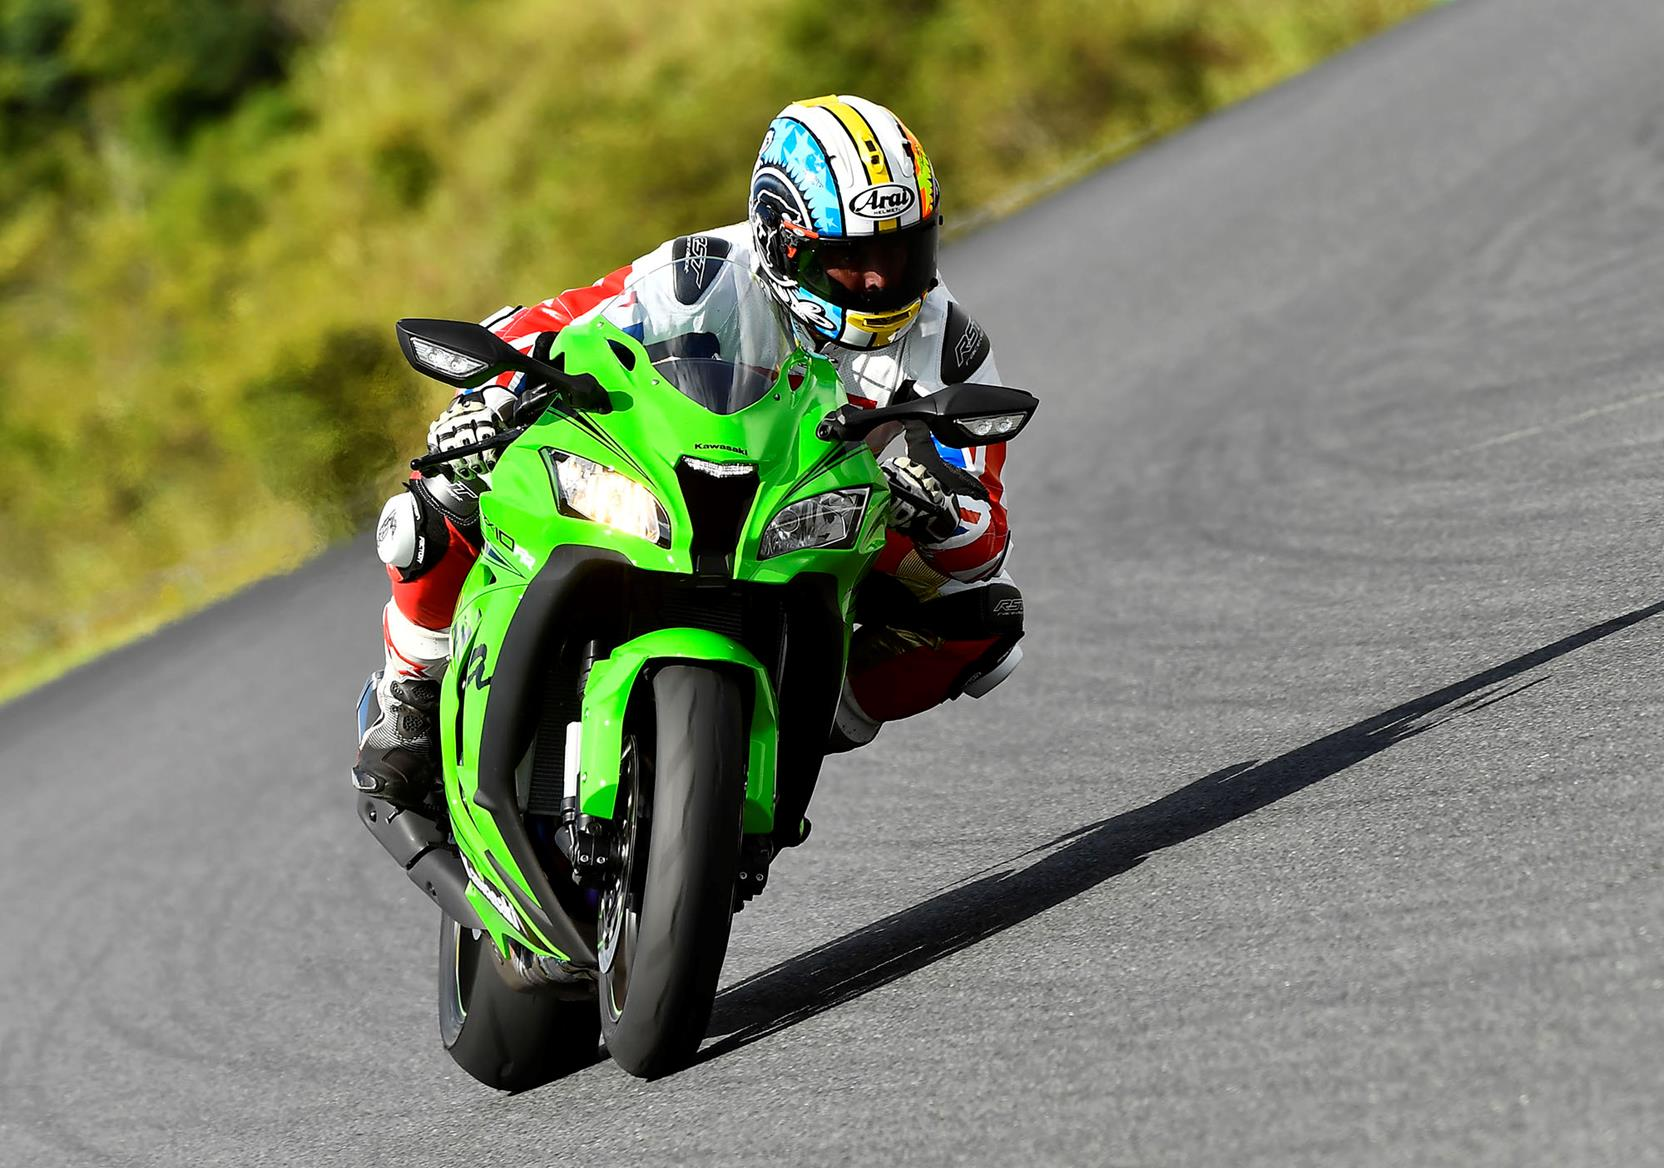 The Kawasaki ZX-10RR is a track weapon